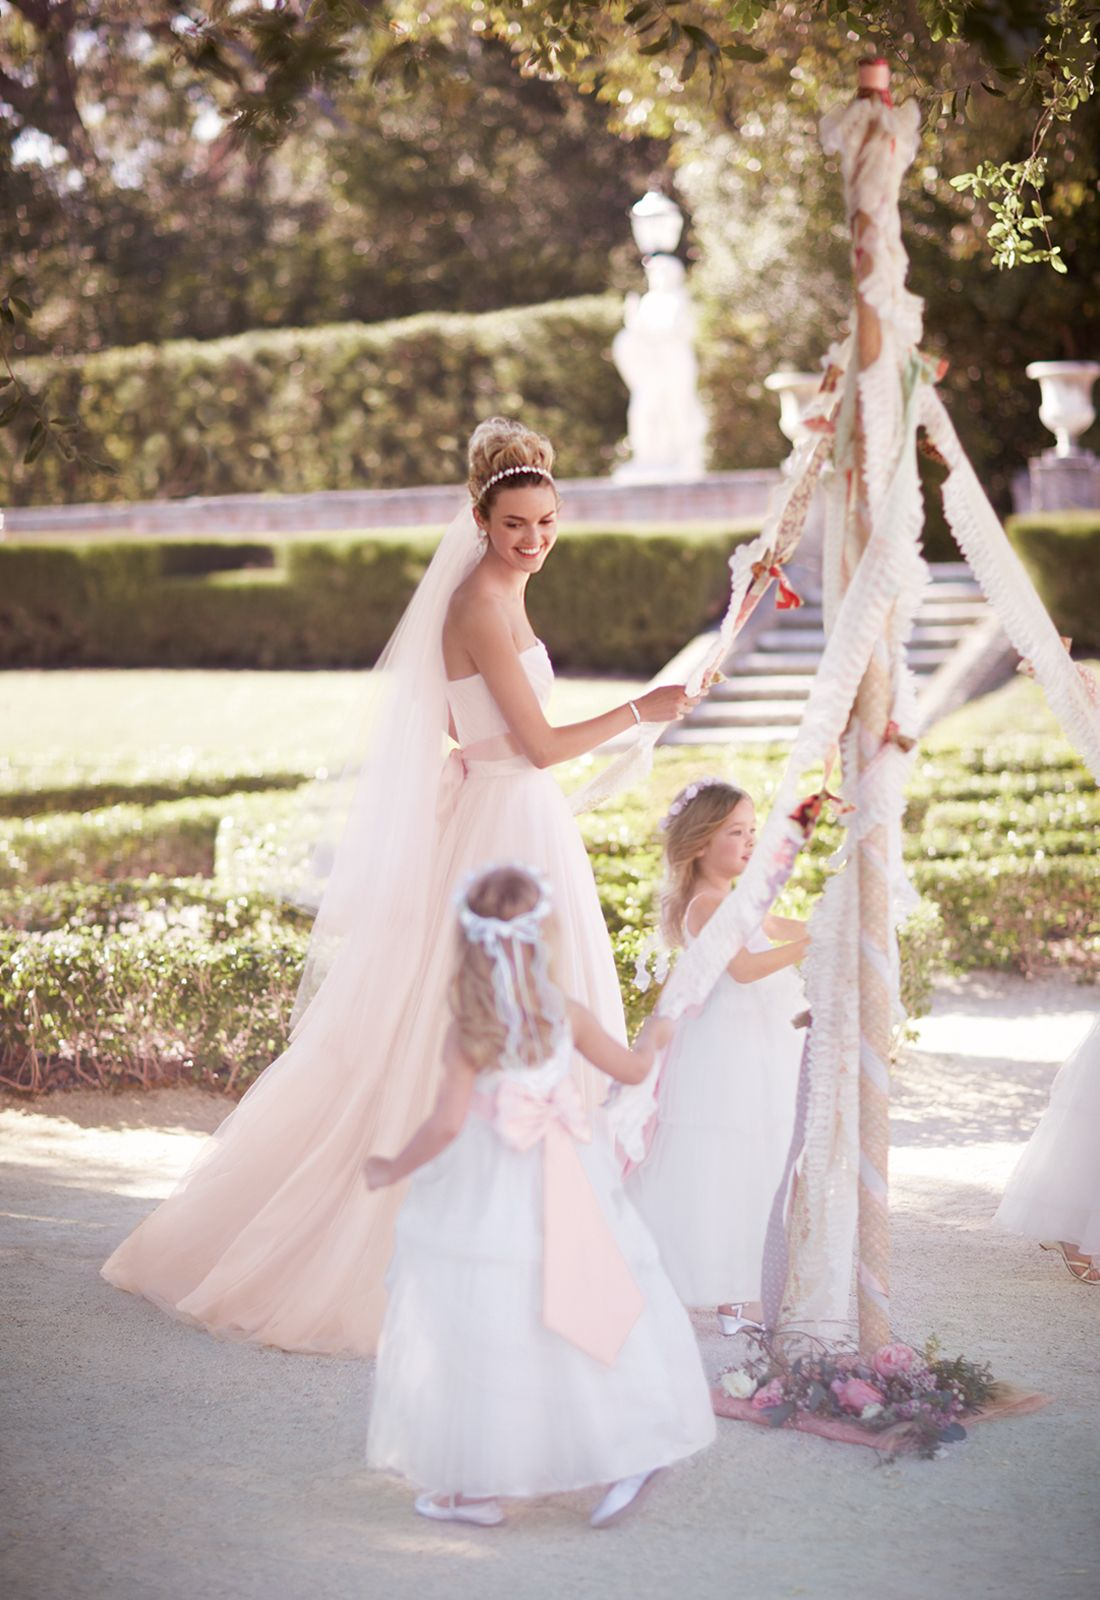 This Strapless Tulle Weddingdress In Whisper Pink Is Perfect For The Bride Who Wants To Look And Feel Like A Princess